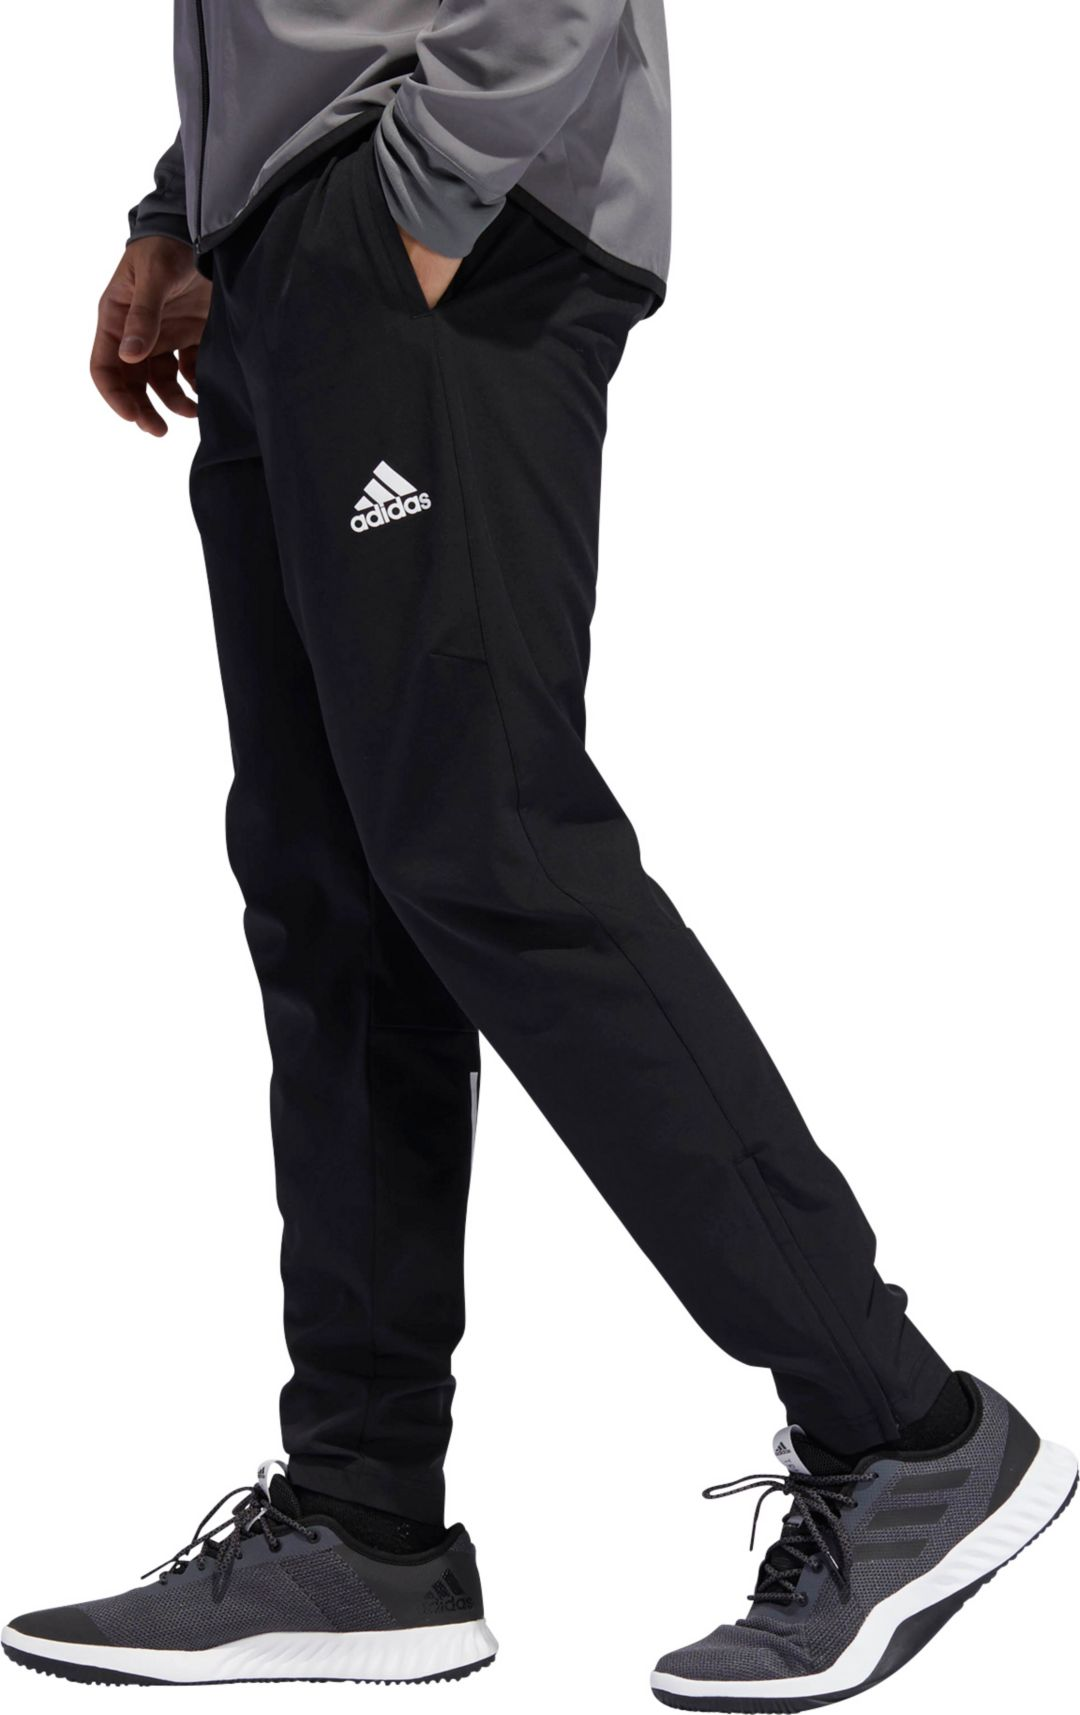 b9a29431ef adidas Men's Axis Woven Wind Pants